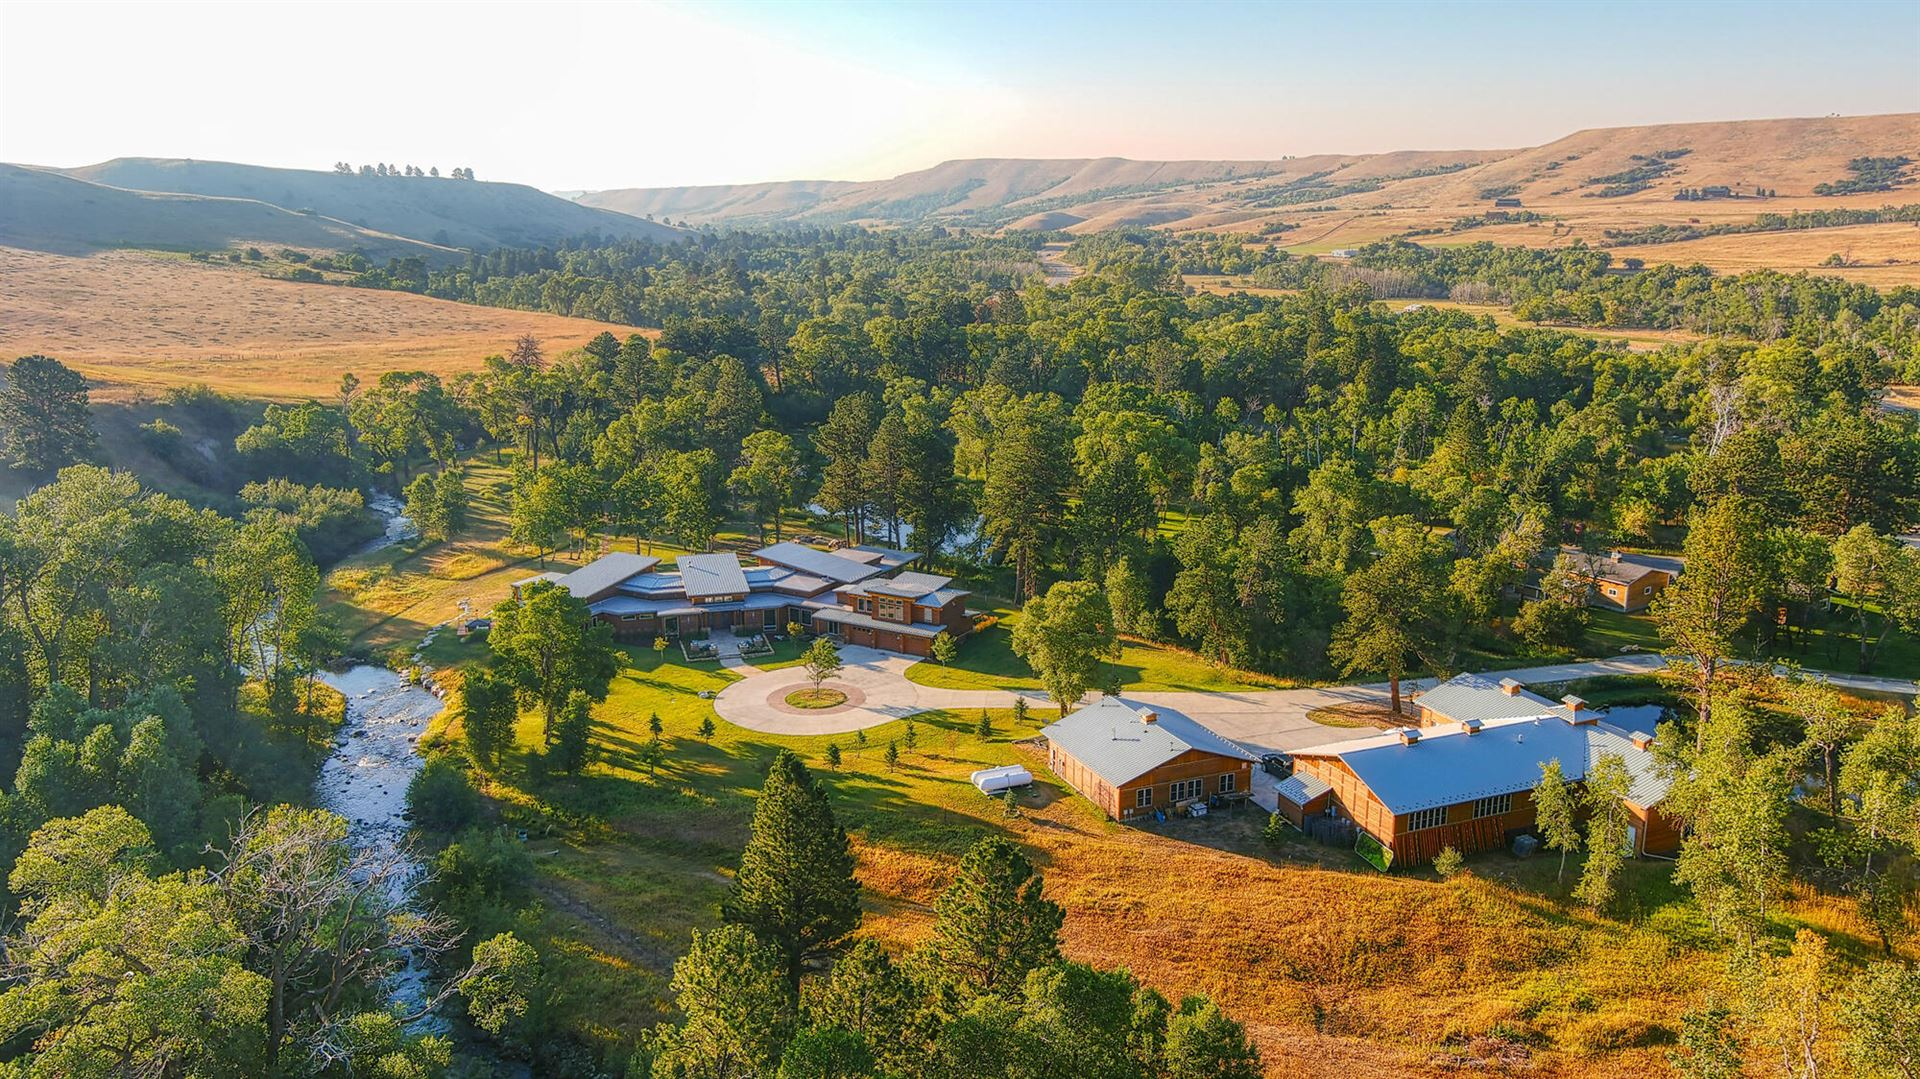 Photo for 377 St Hwy 193, Banner, WY 82842 (MLS # 20-902)